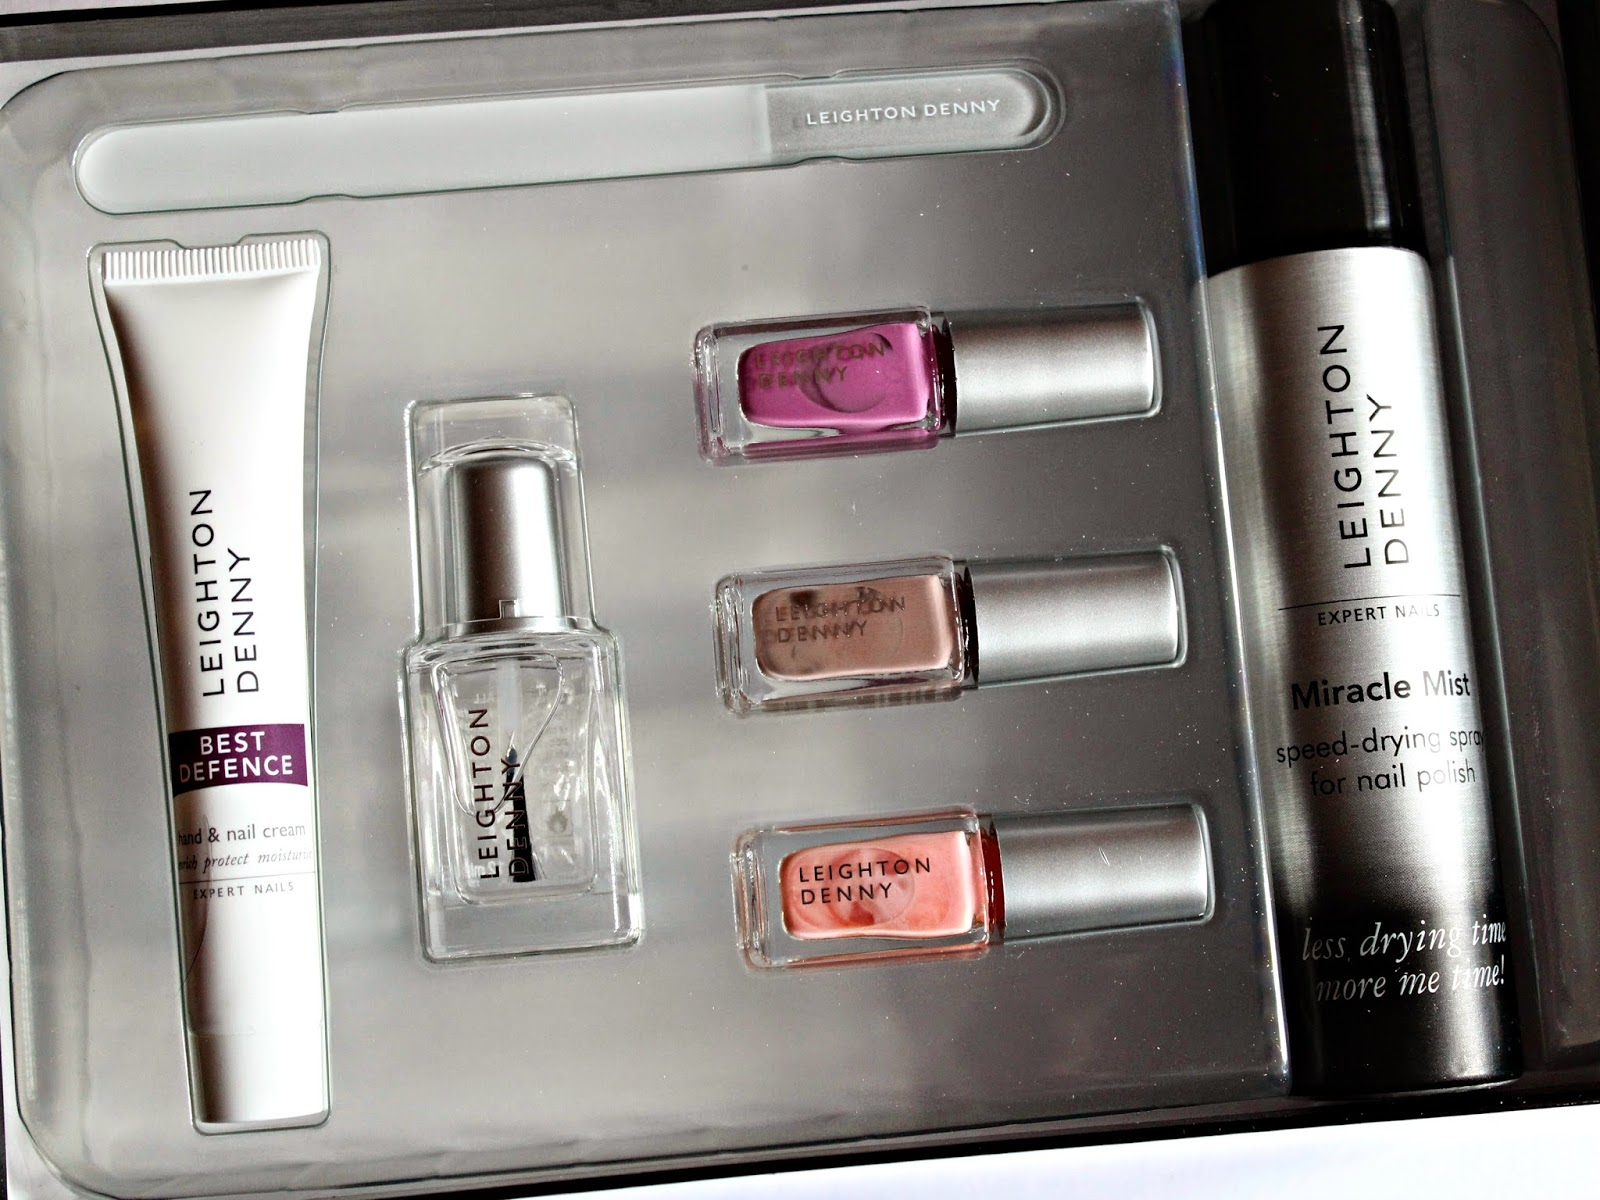 A picture of a Leighton Denny Expert Nails Kit